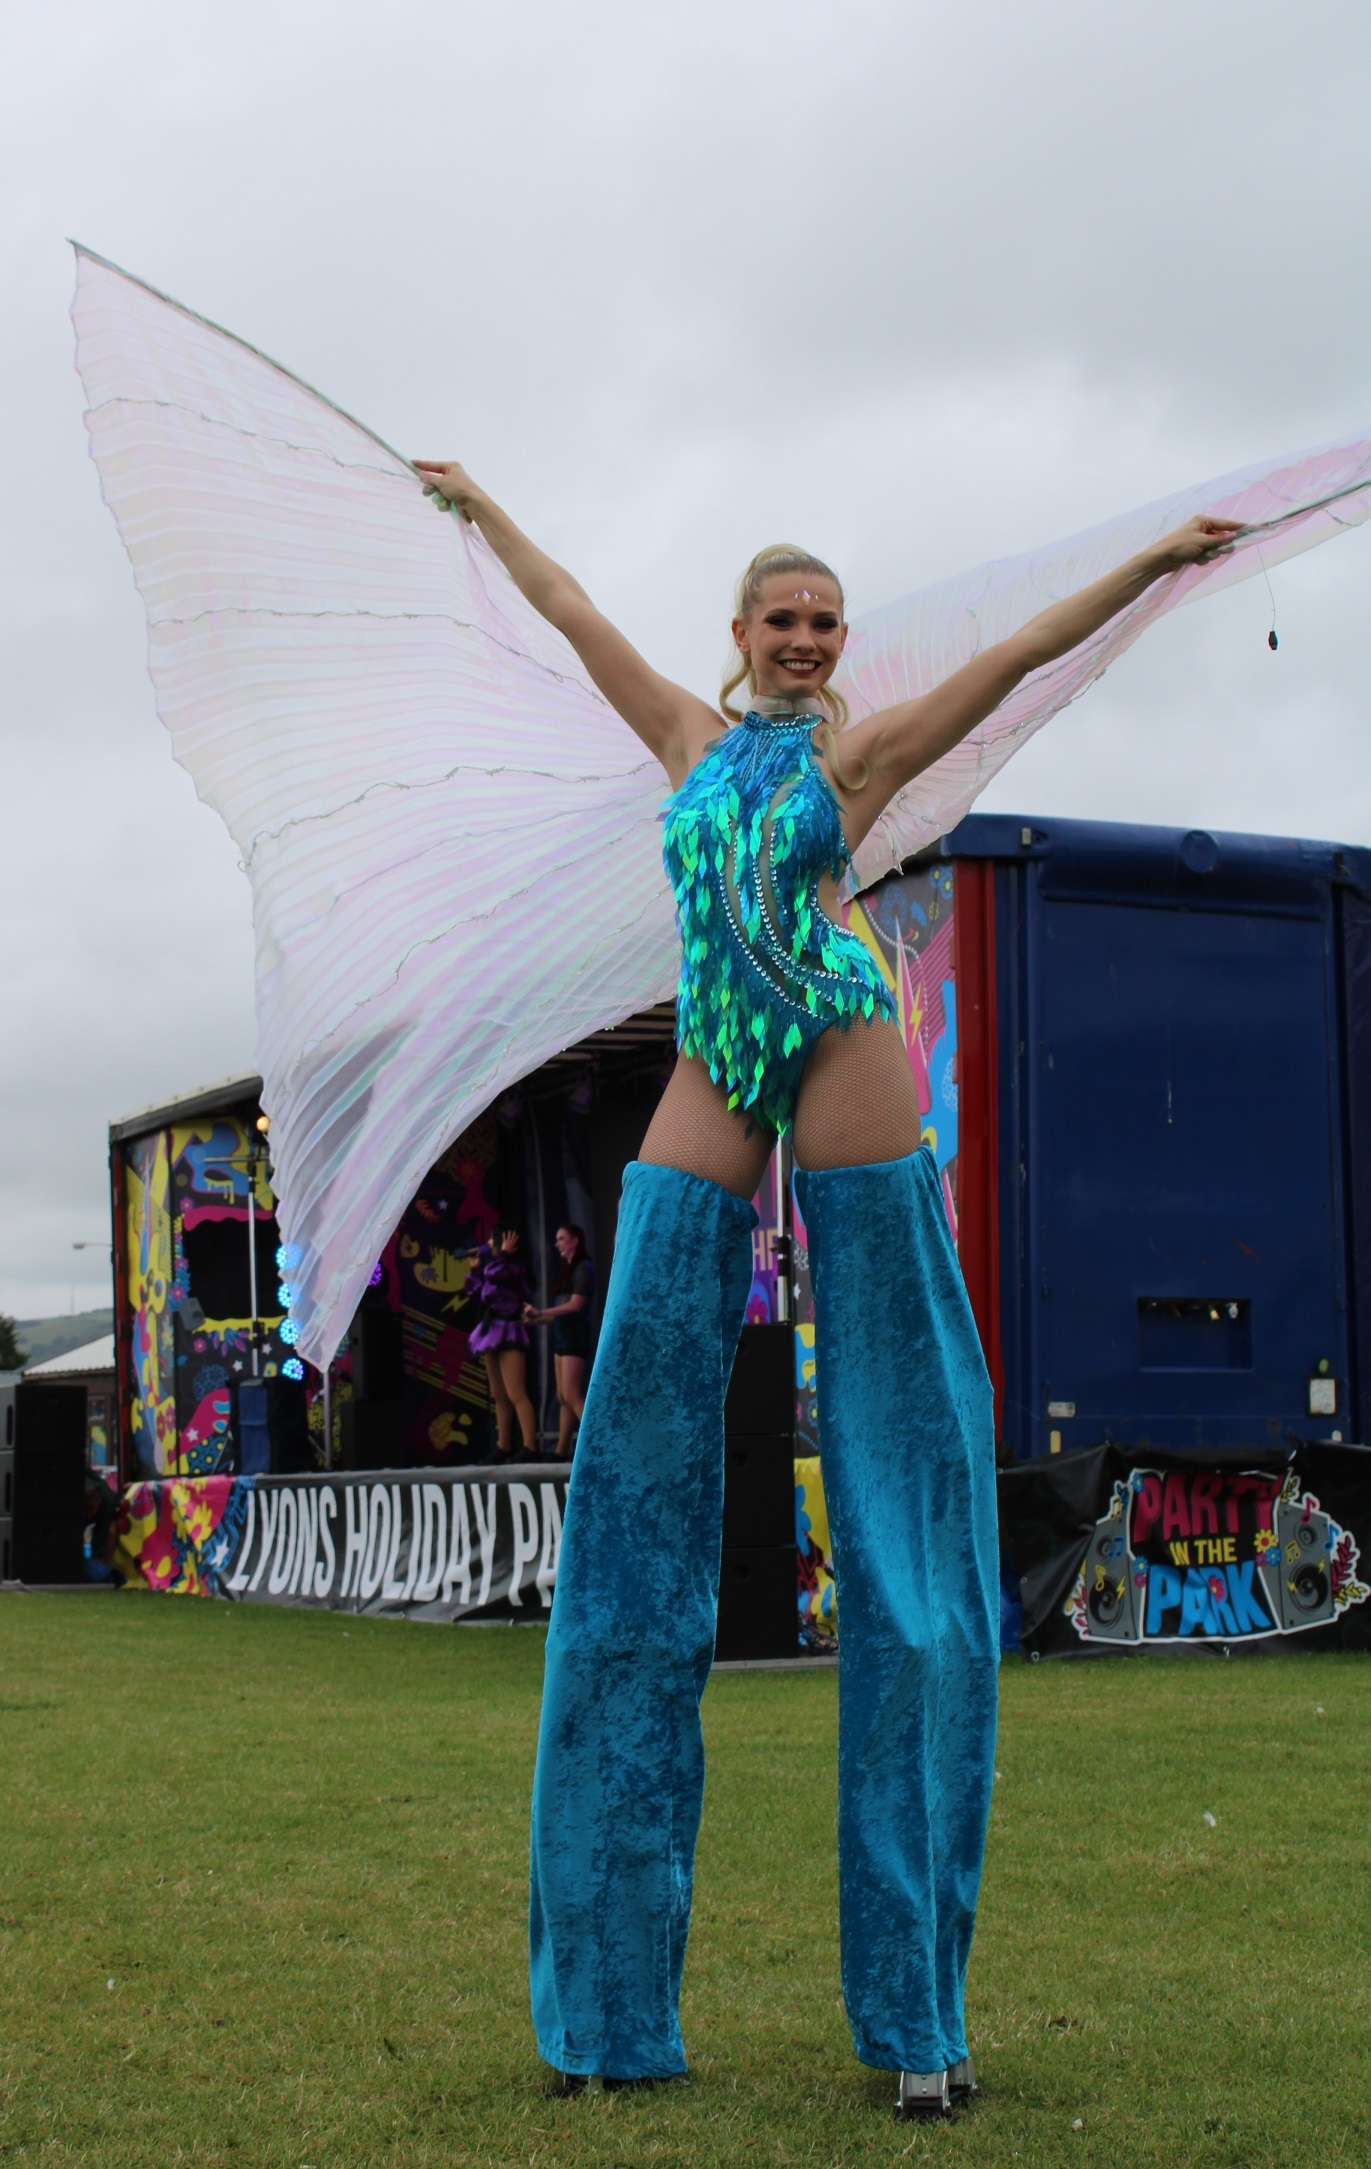 Entertainers were back to doing what they do best! All pictures: Lyons Robin Hood in Rhyl